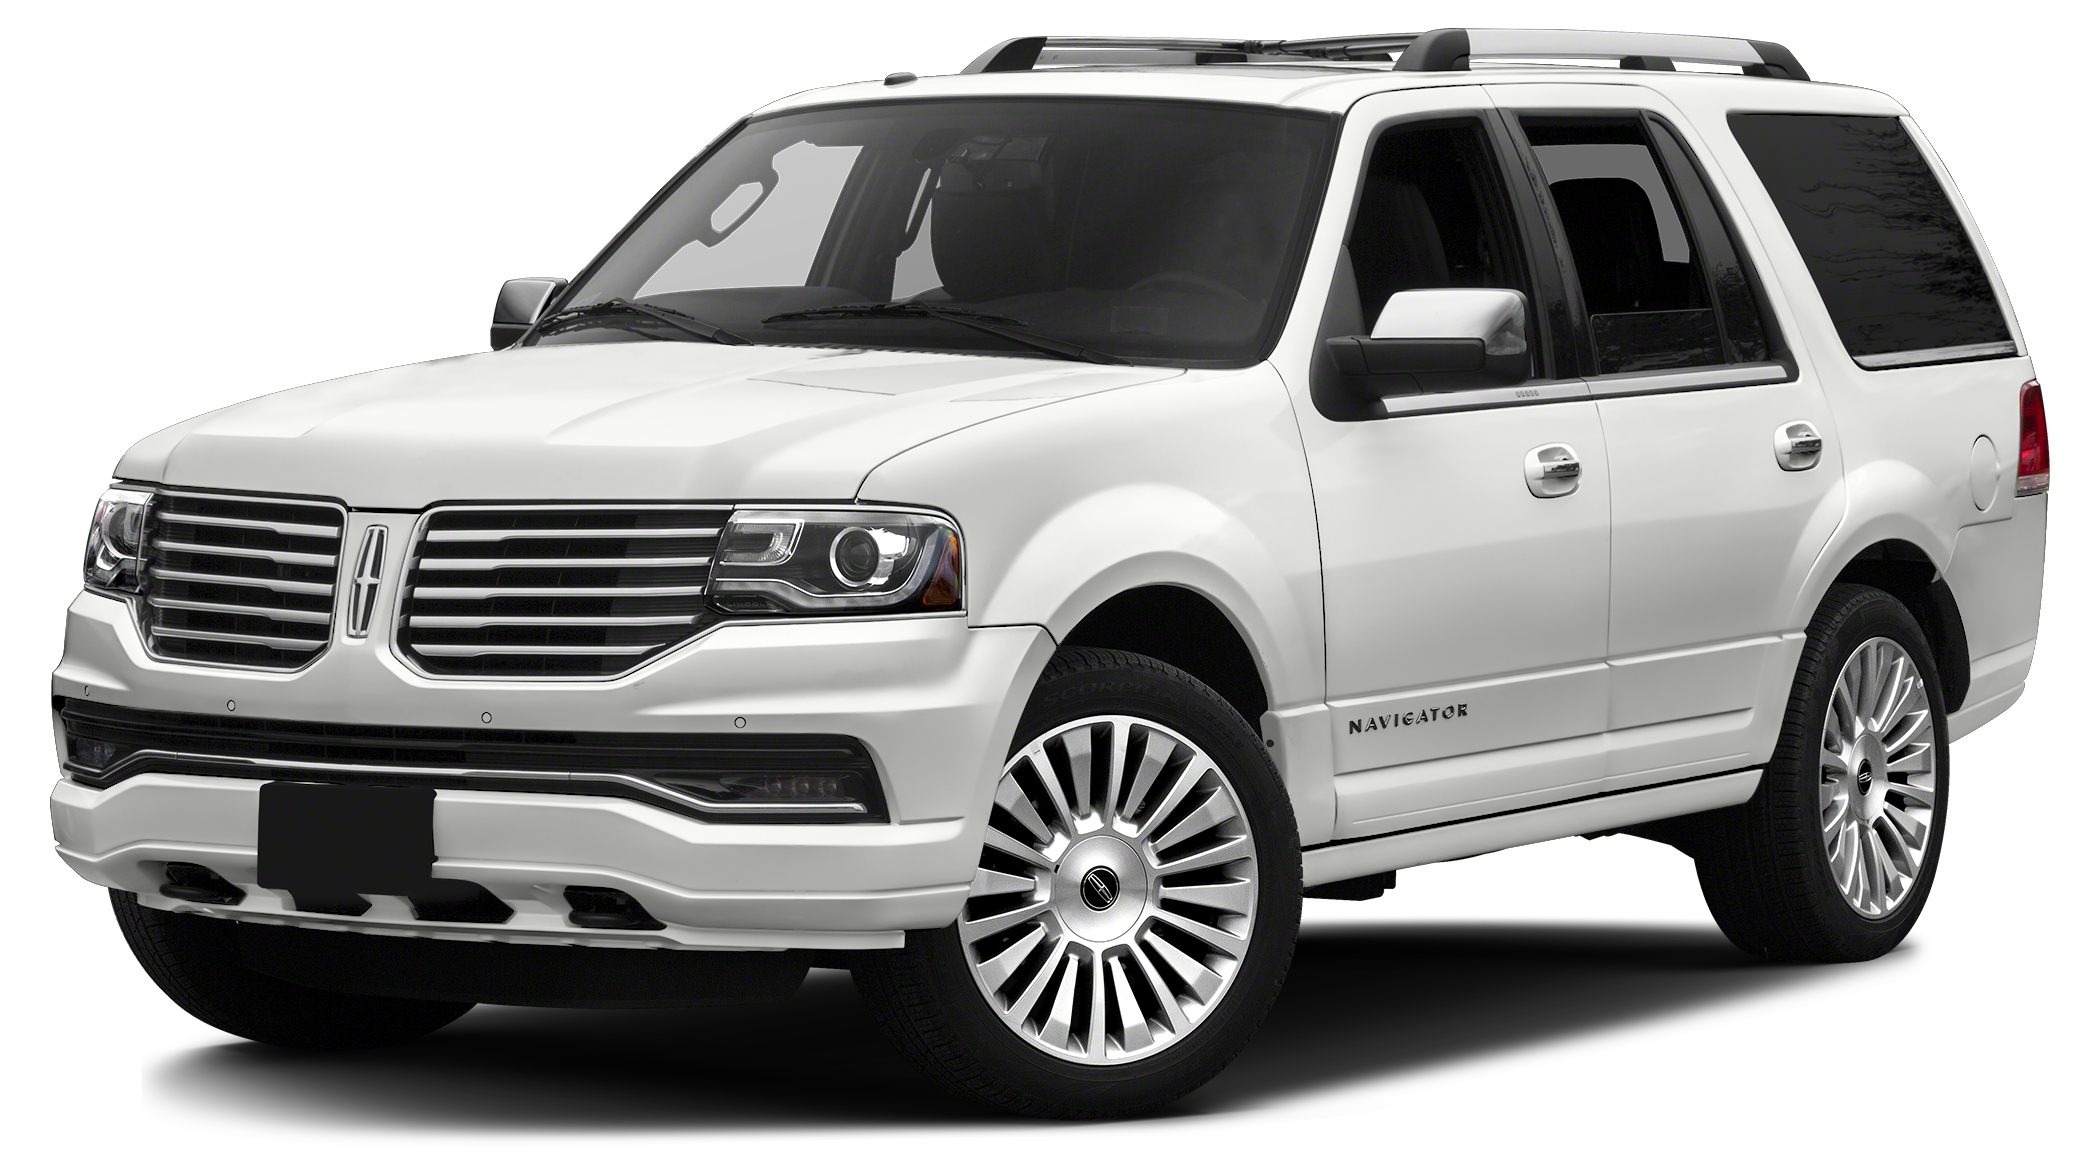 2015 Lincoln Navigator Base LUXURY FOR LESS ALWAYS AT MATTHEWS CURRIE FORD THIS 2015 NAVIGATOR IS